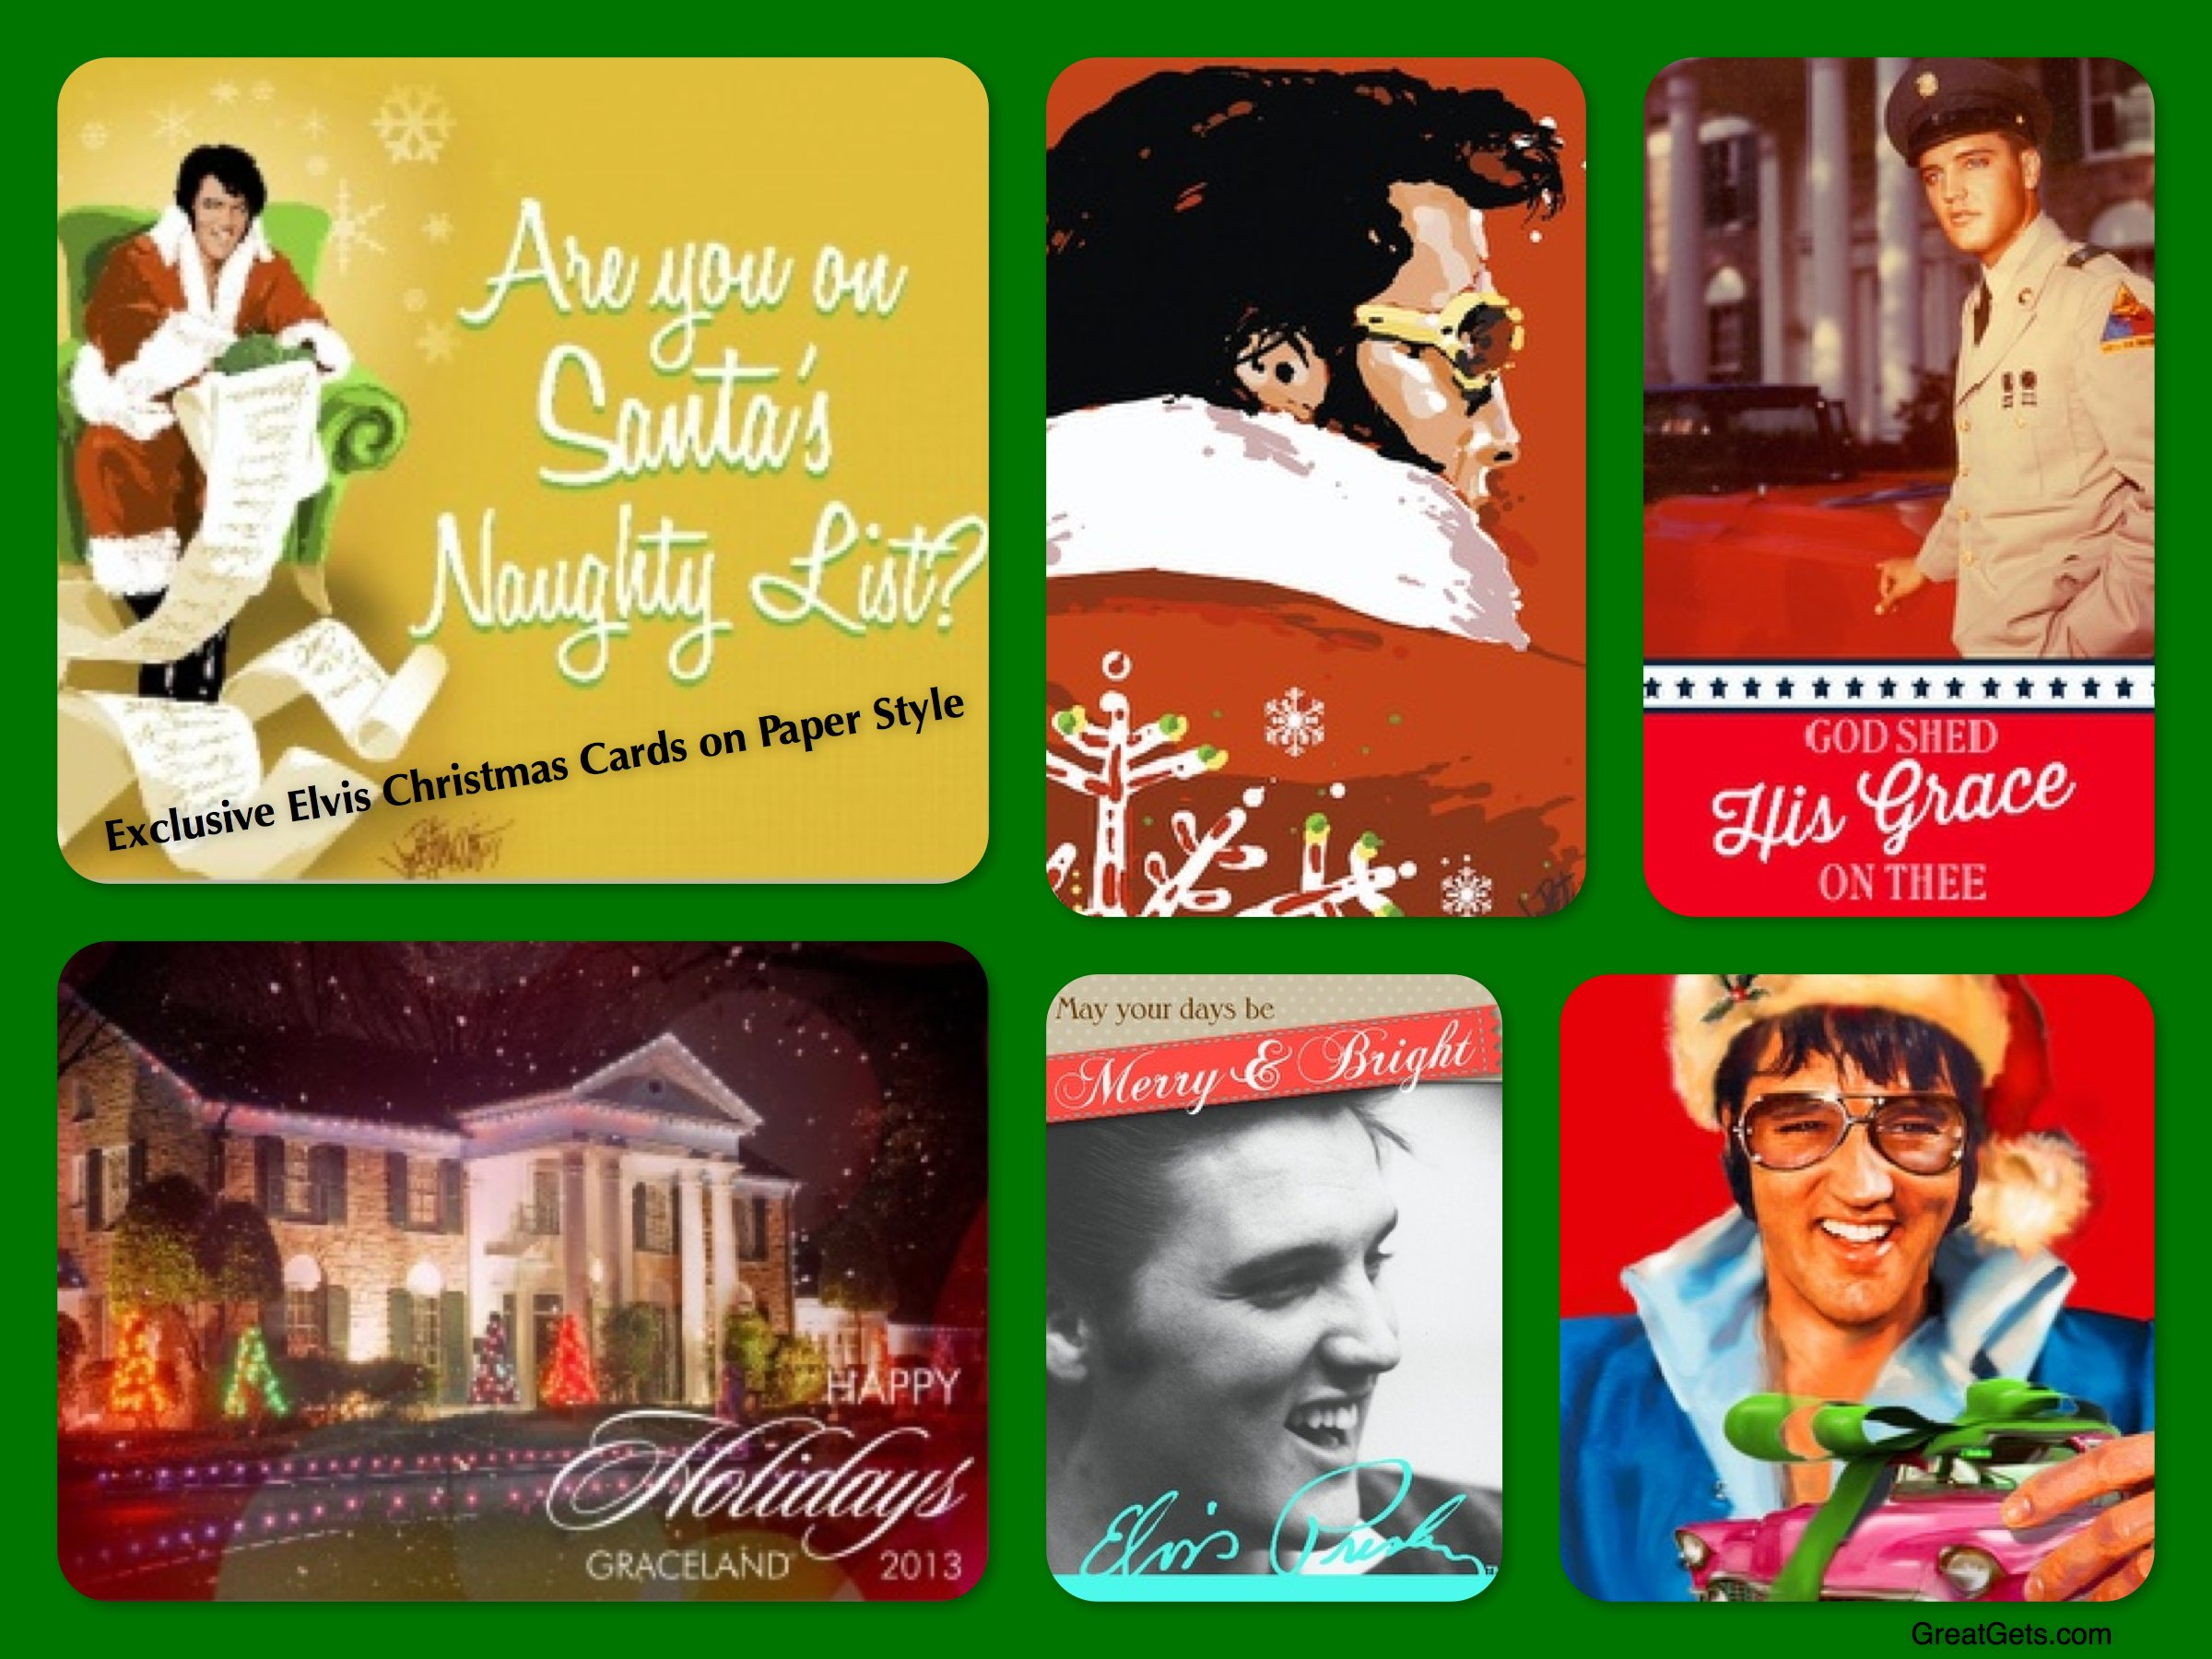 Elvis christmas cards 25 off with paperstyle promo code elvis christmas cards 25 off with paperstyle promo code partyideapros kristyandbryce Image collections